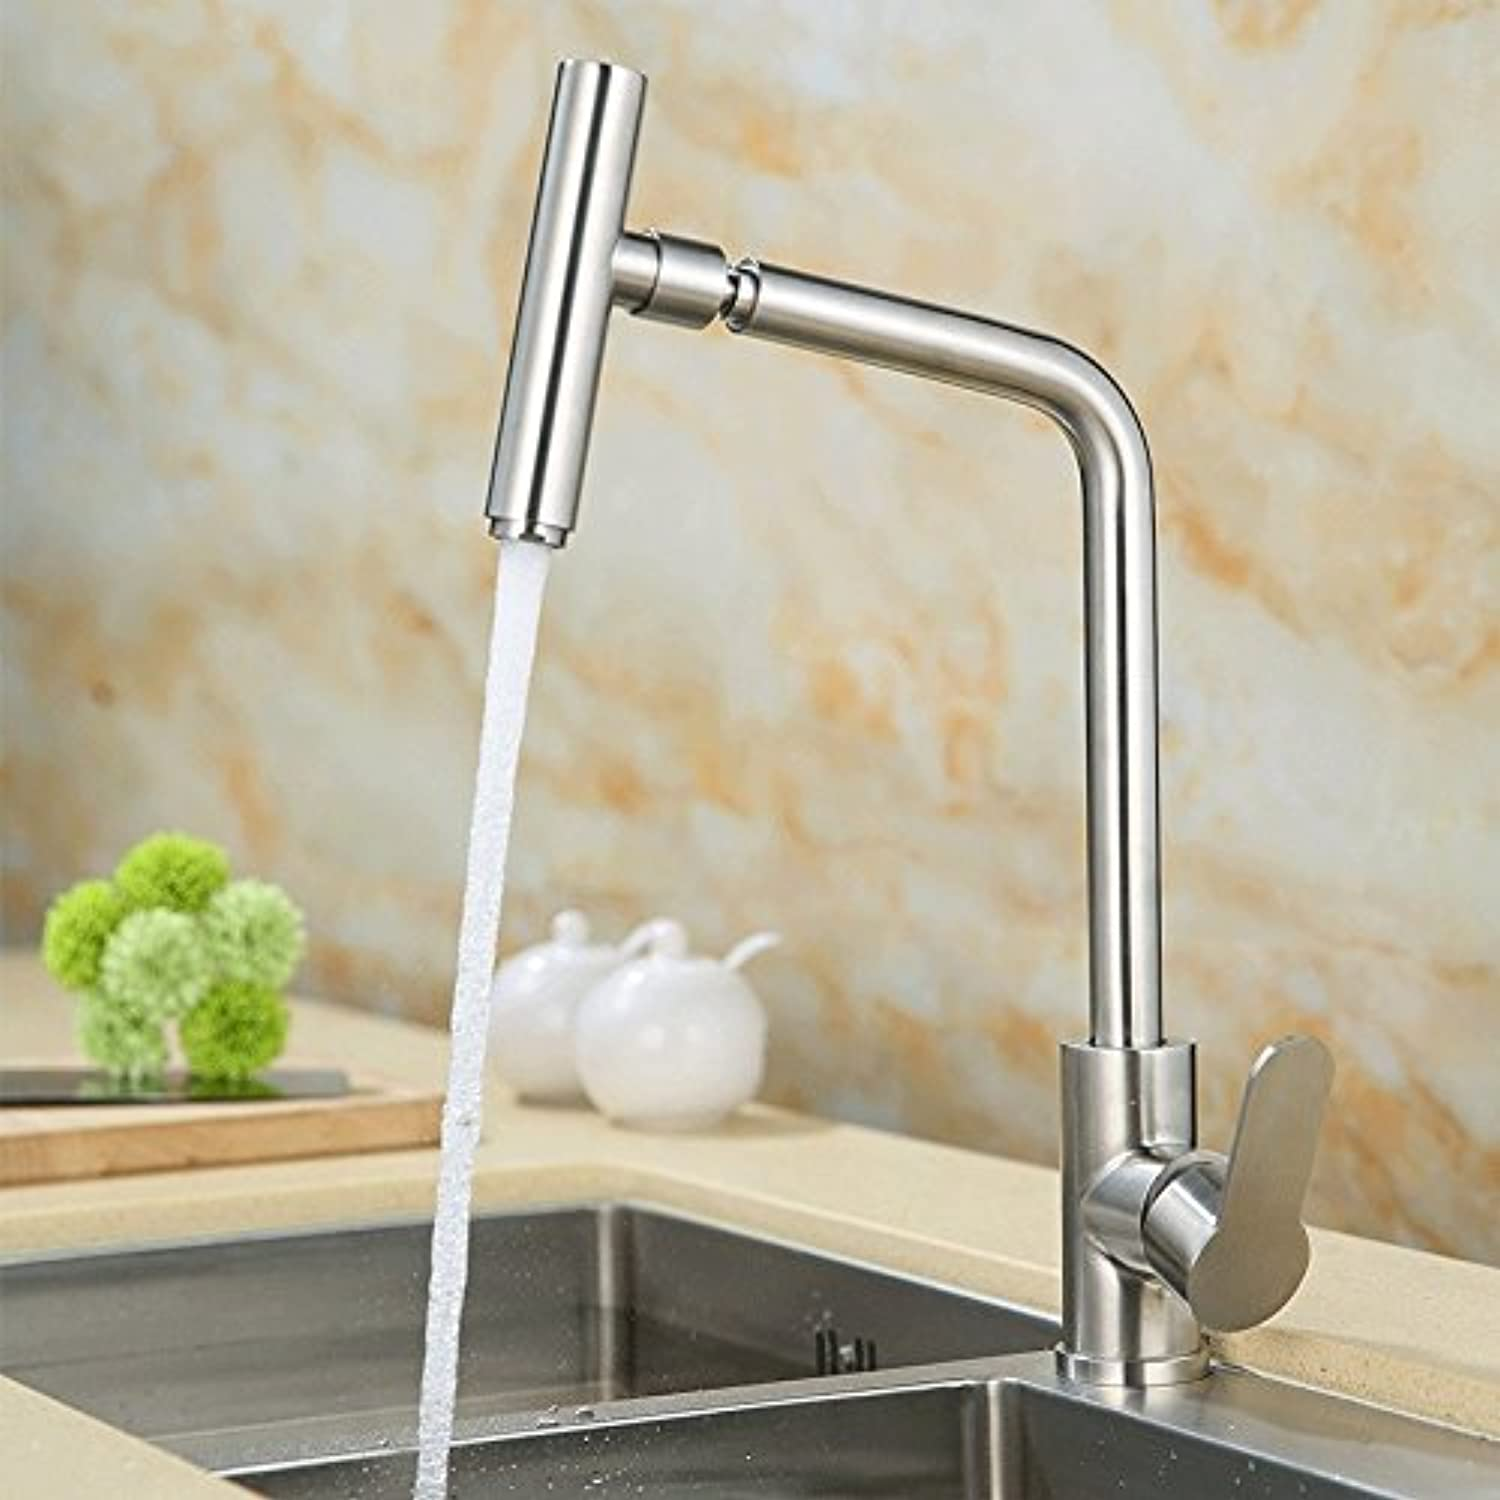 Commercial Single Lever Pull Down Kitchen Sink Faucet Brass Constructed Polished Stainless Steel Kitchen Faucet, Hot and Cold Sink, Universal Sink Faucet, redatable Sink Faucet